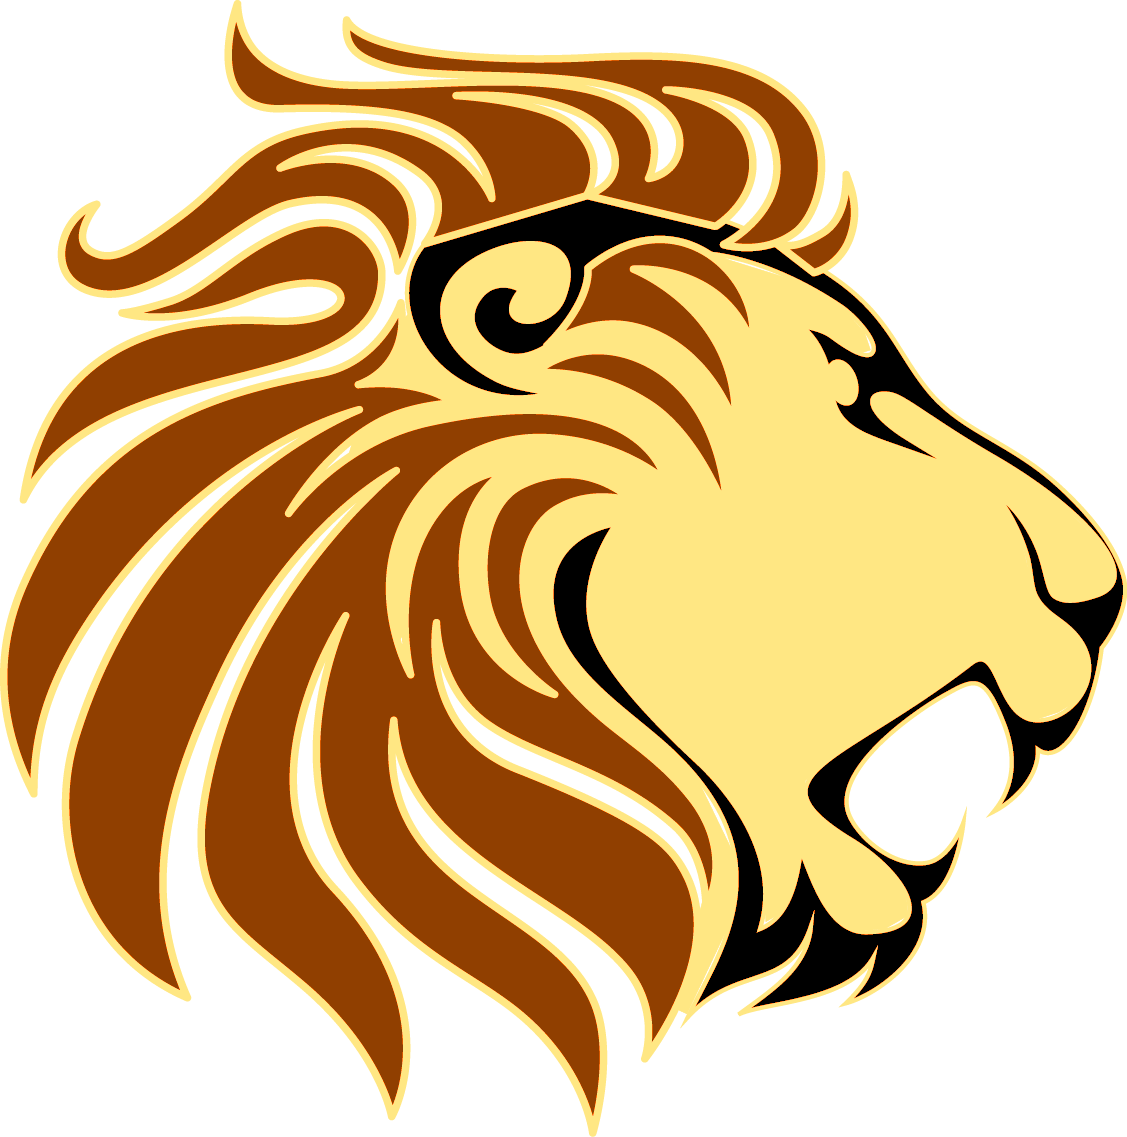 Clipart lion ear. Silhouette at getdrawings com